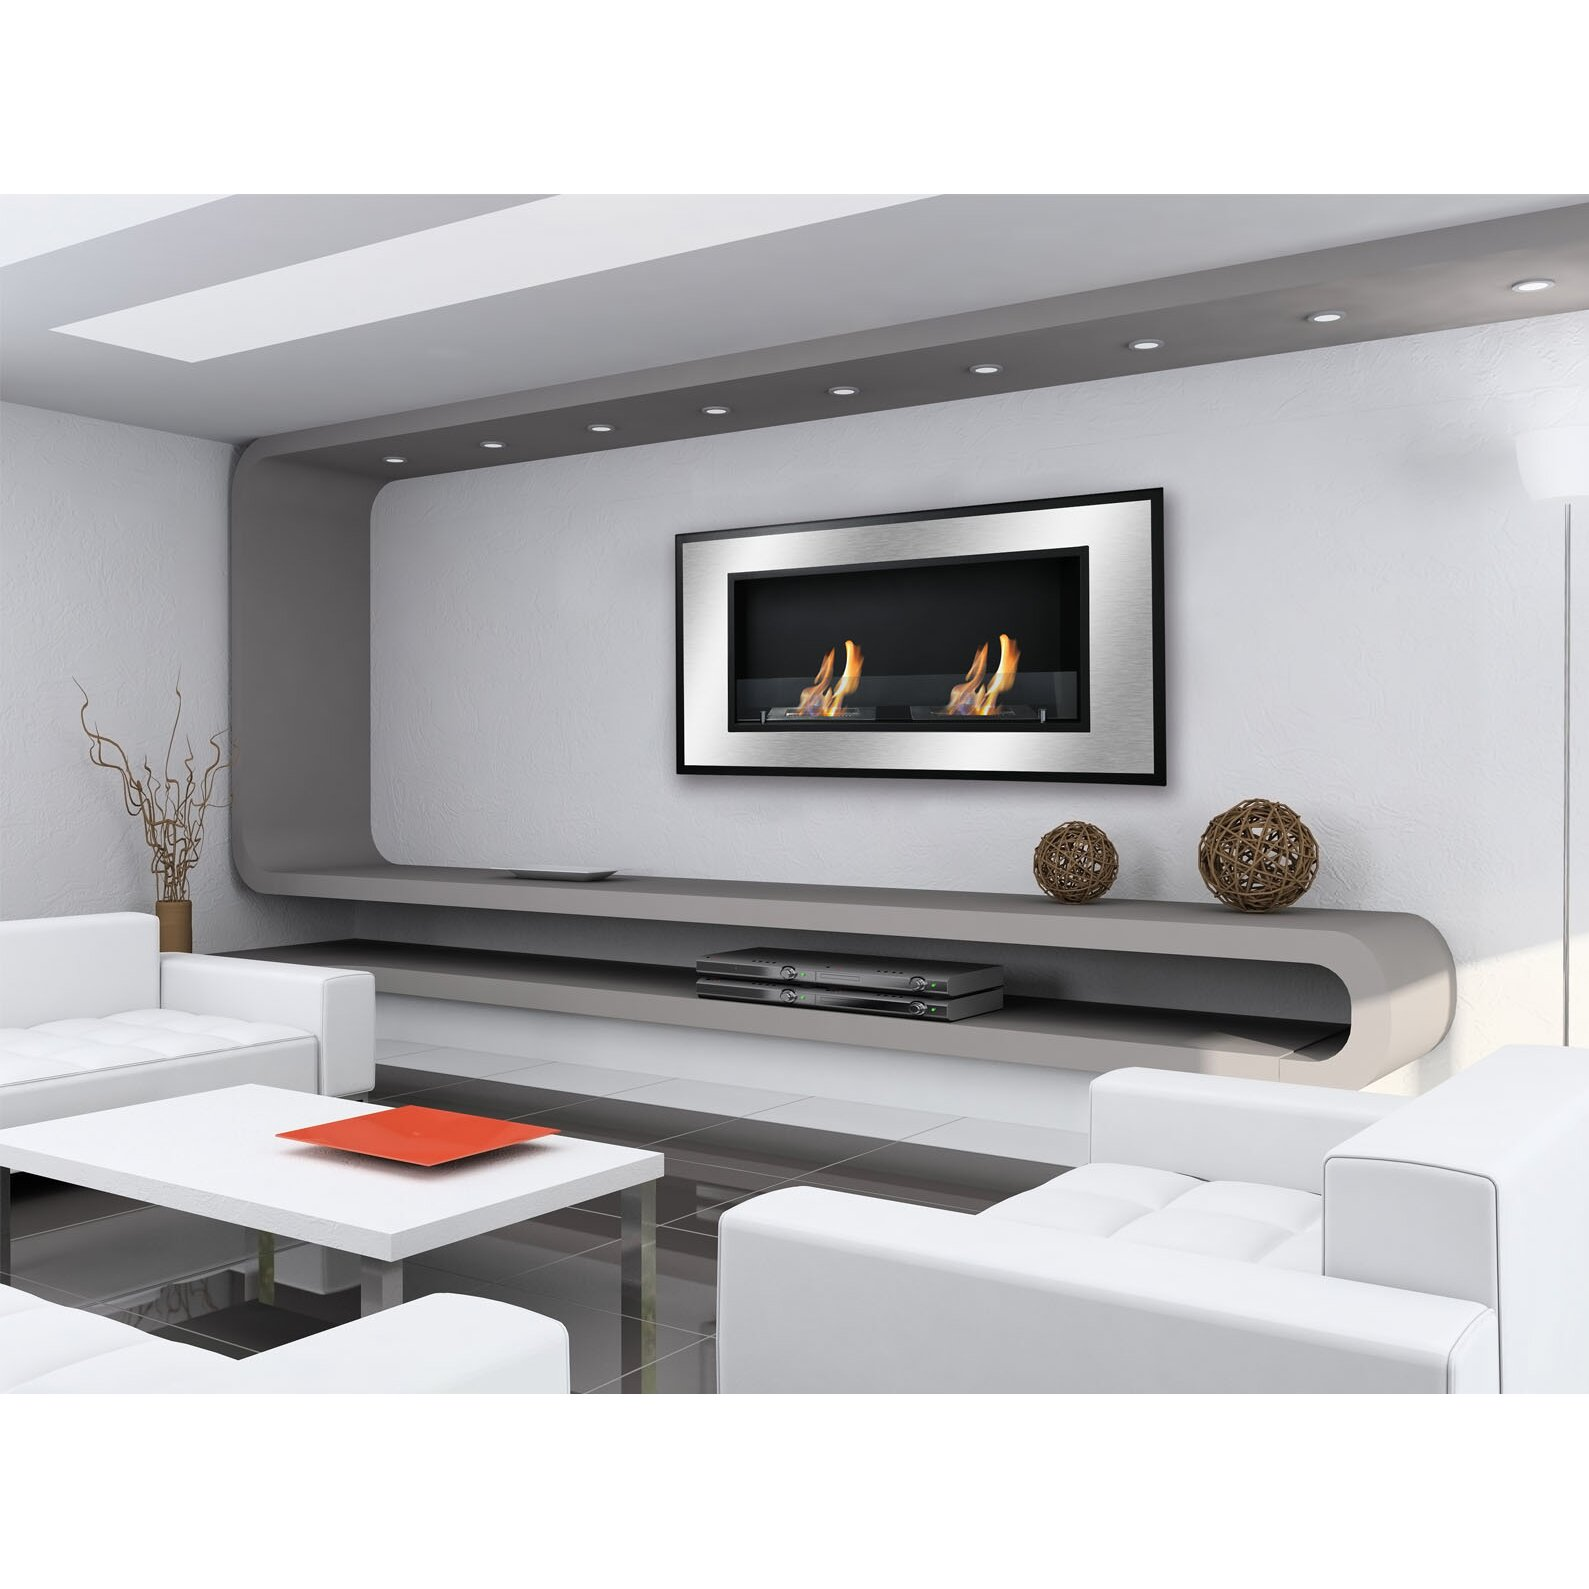 Ignis Bellezza Recessed Ventless Wall Mount Ethanol Fireplace